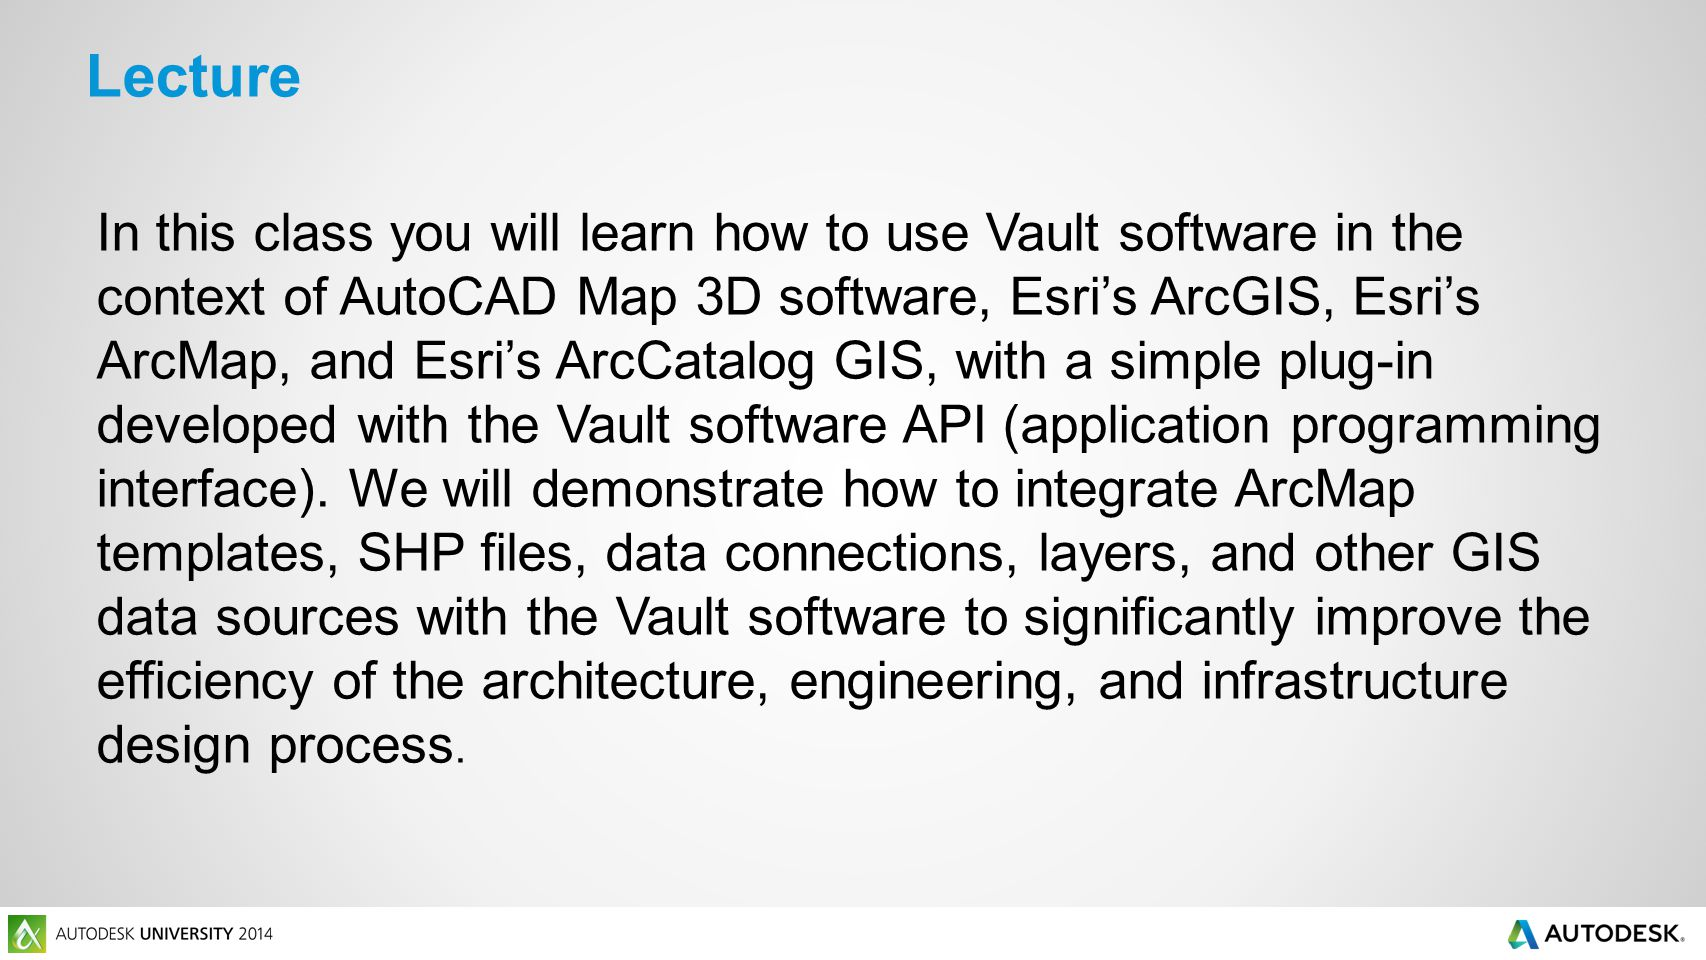 In this class you will learn how to use Vault software in the context of AutoCAD Map 3D software, Esri's ArcGIS, Esri's ArcMap, and Esri's ArcCatalog GIS, with a simple plug-in developed with the Vault software API (application programming interface).